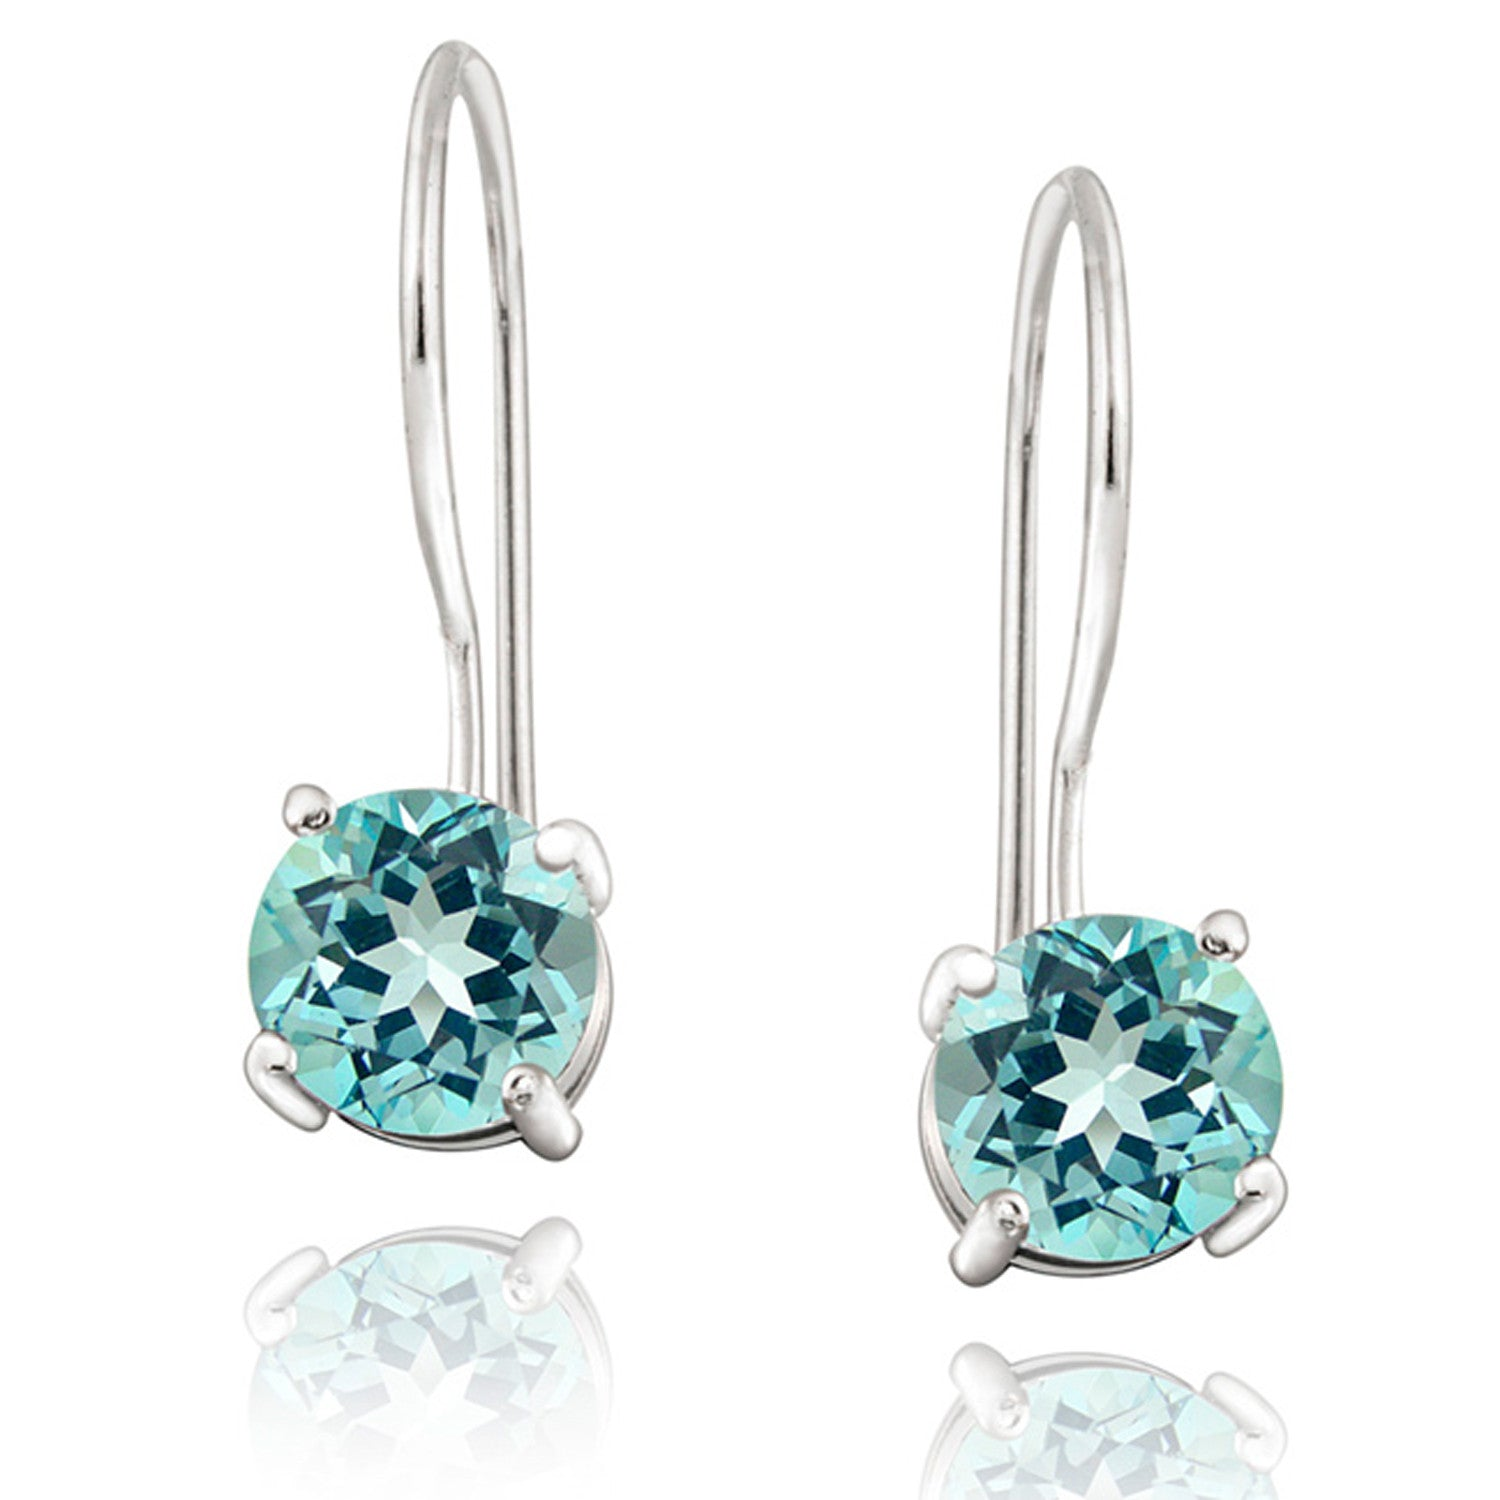 Sterling Silver Round Cut Gemstone Stone Euro Wire Dangle Earrings - Blue Topaz